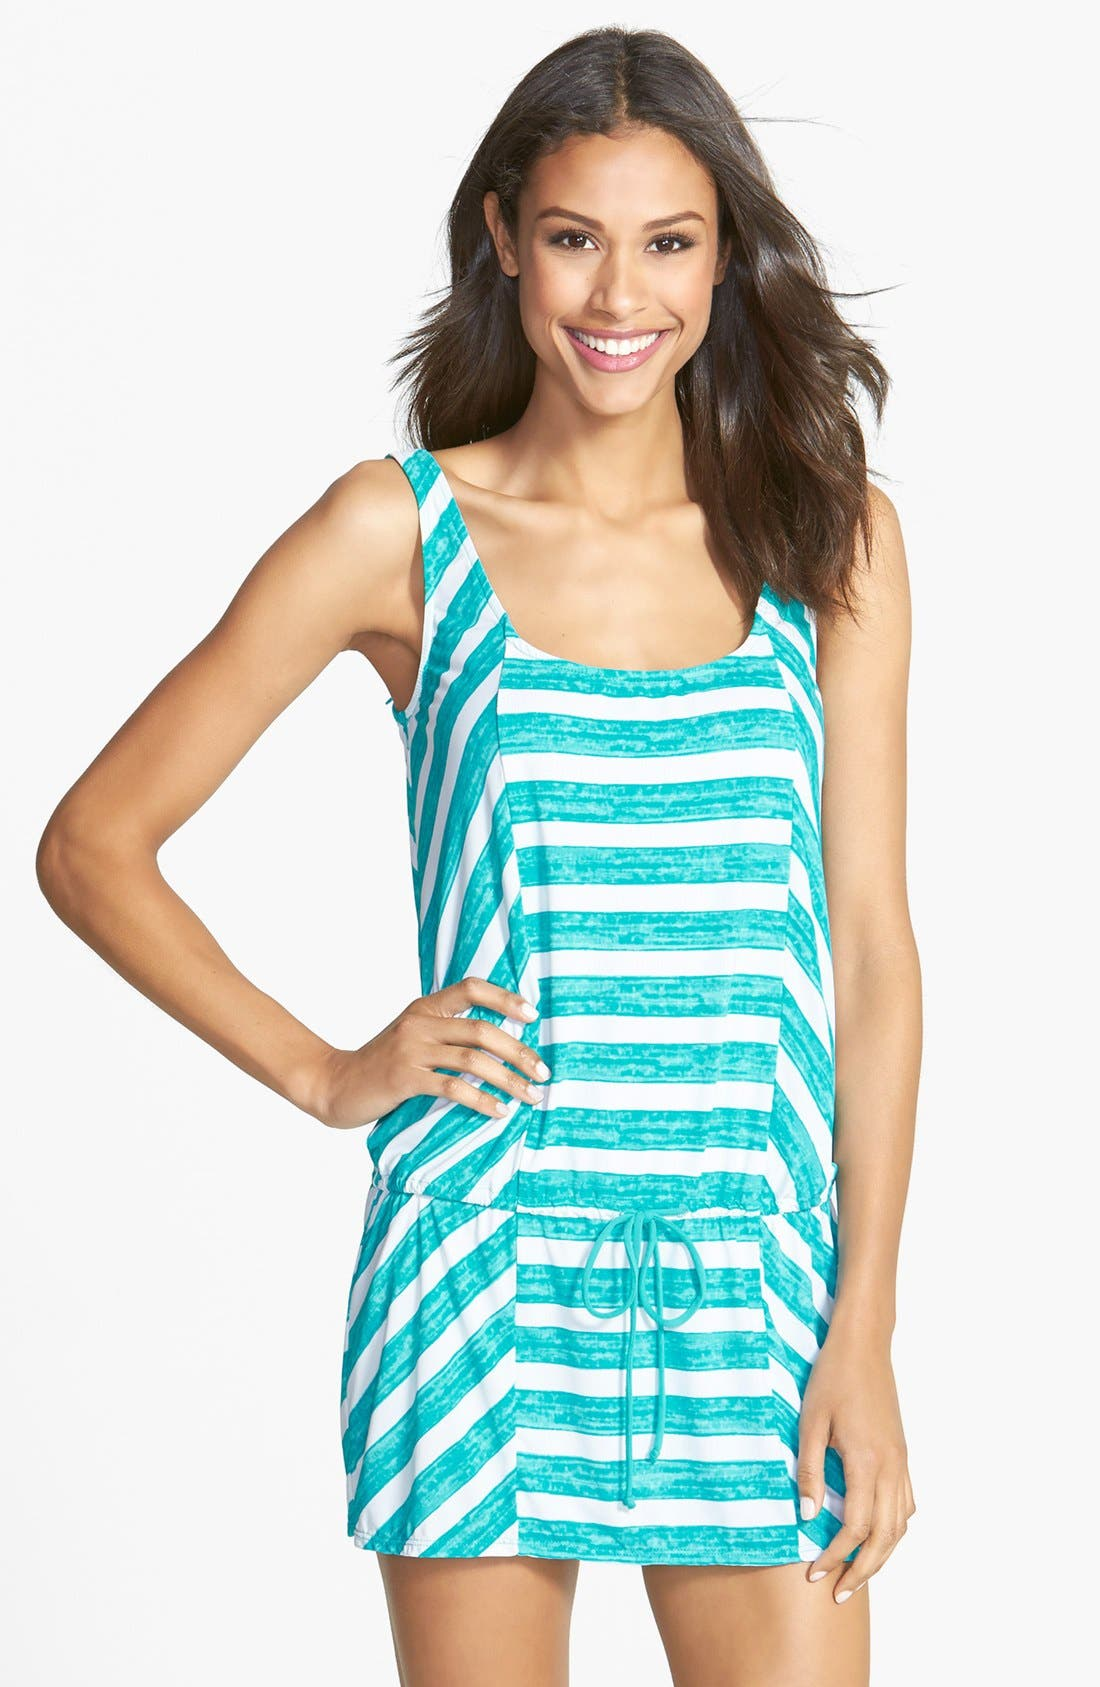 Main Image - Coco Rave 'Lucky Girls Wear Stripes' Cover-Up Tank Dress